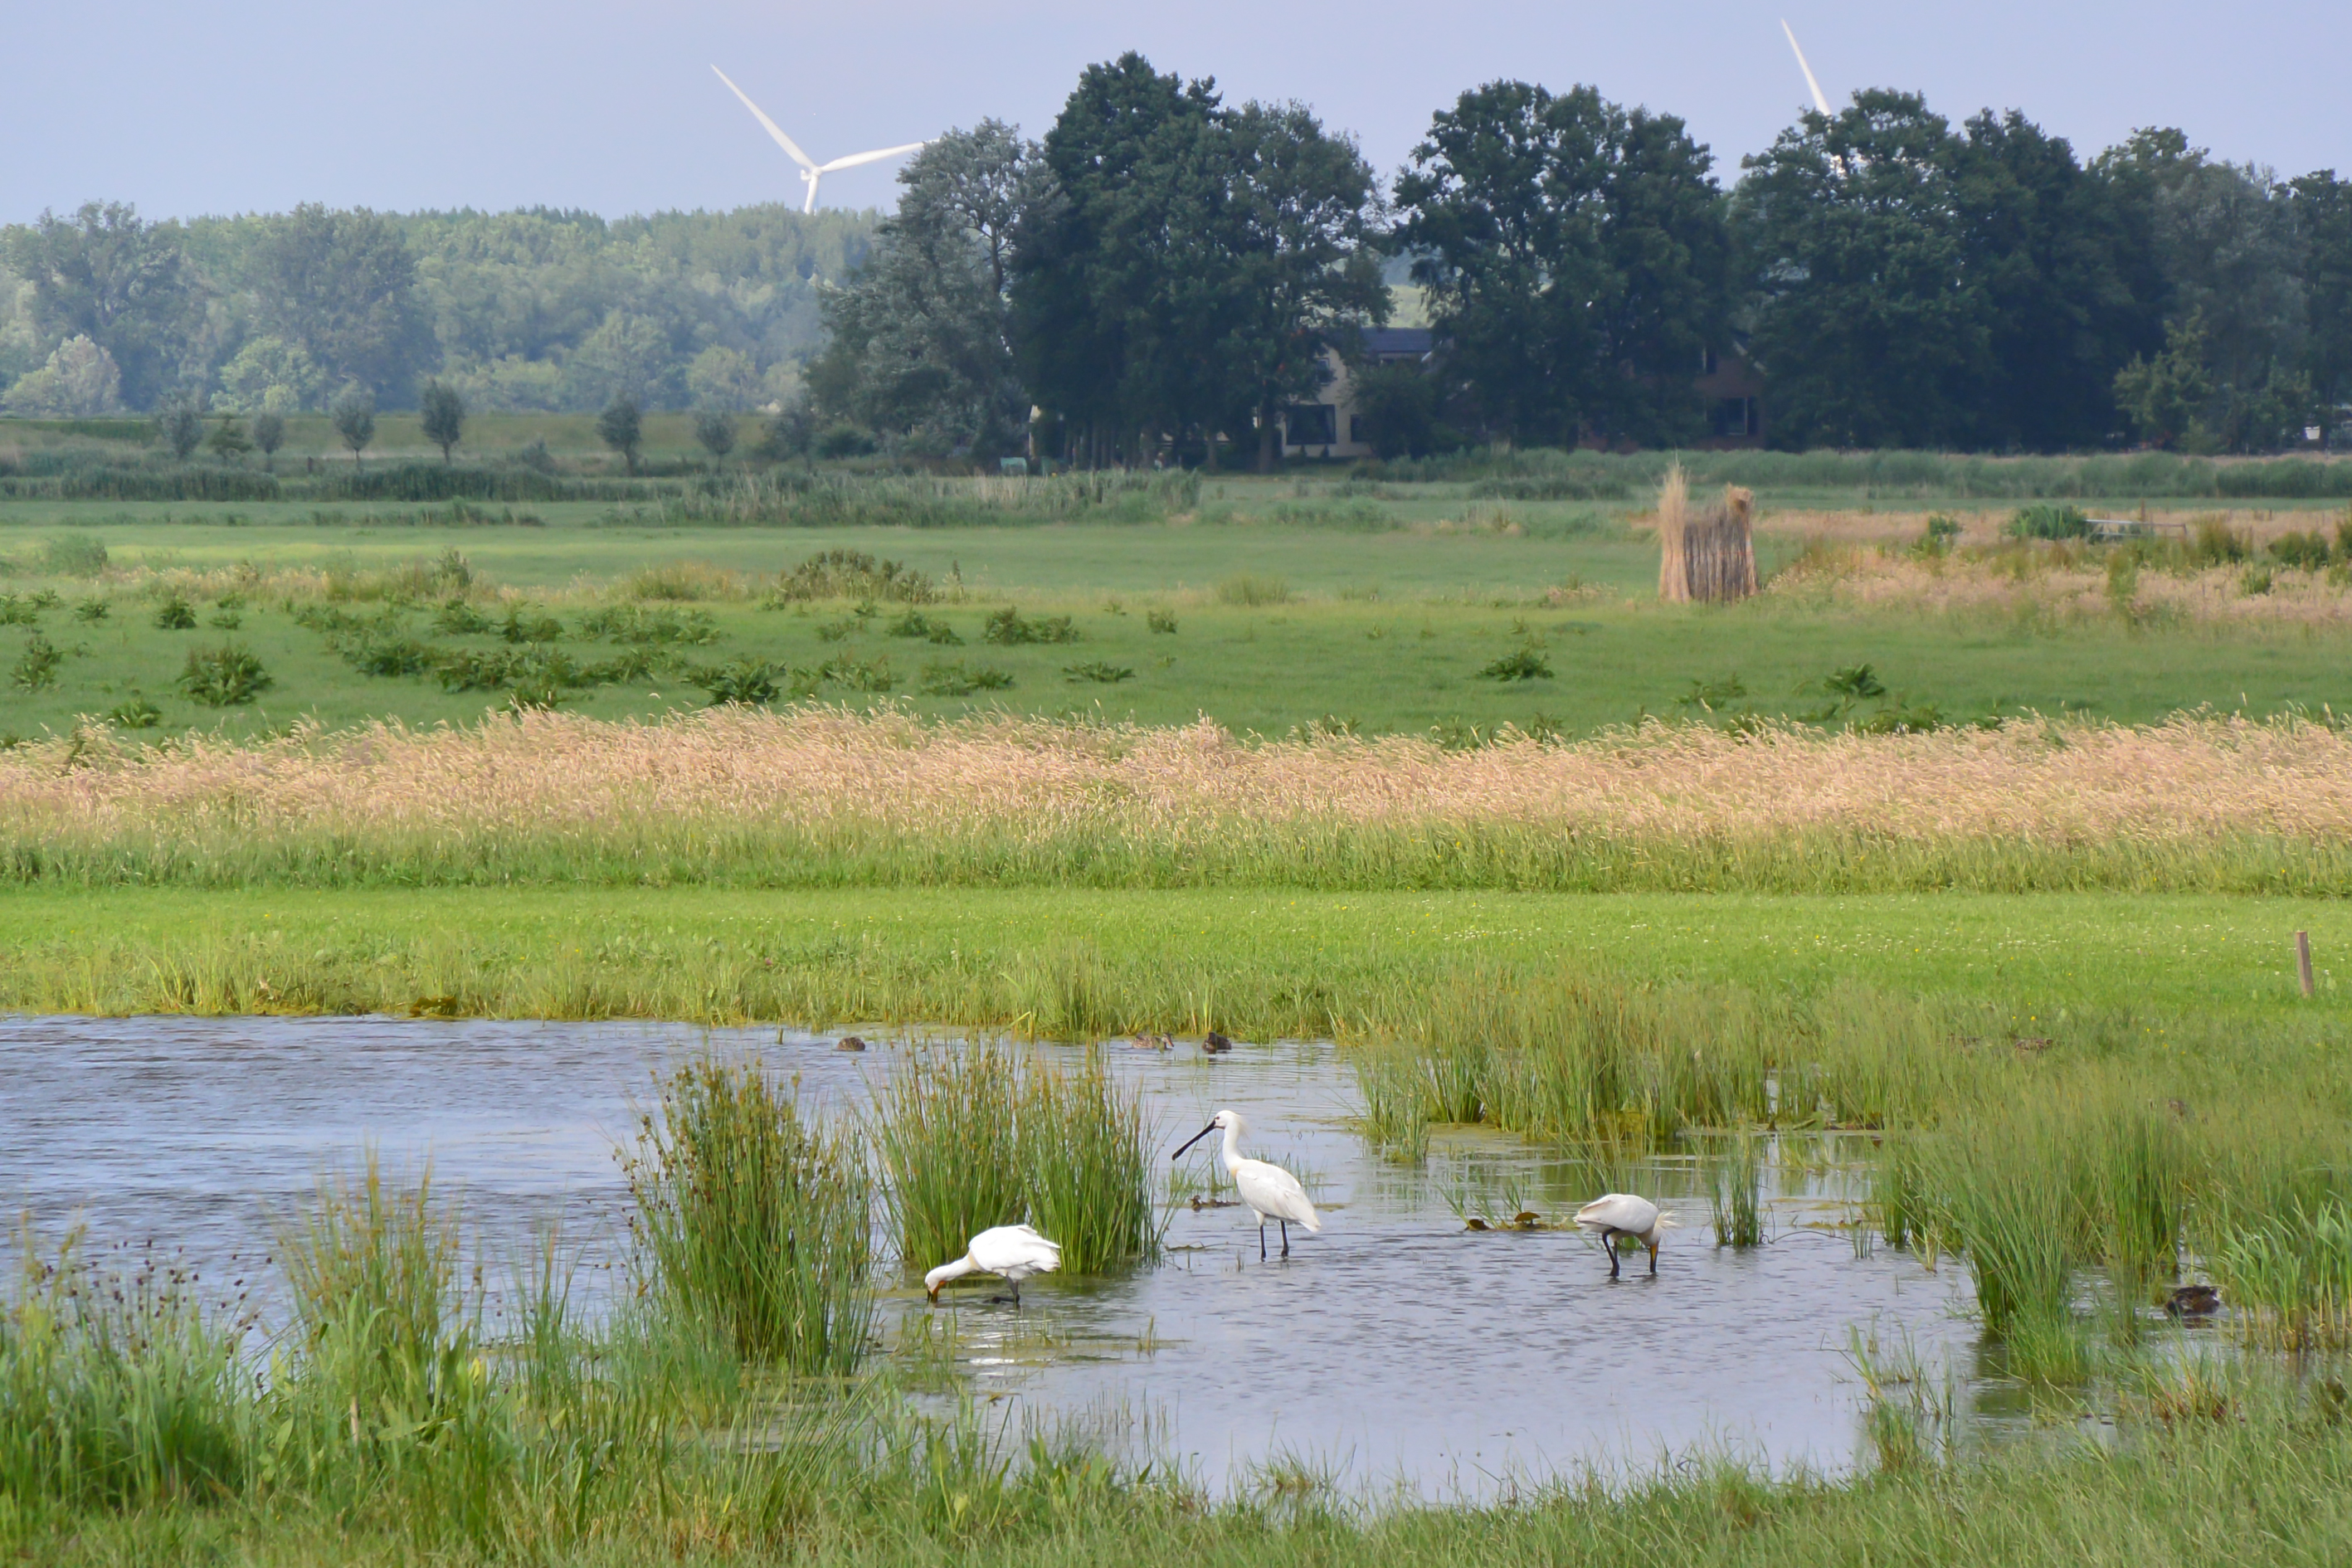 vogels in de polder